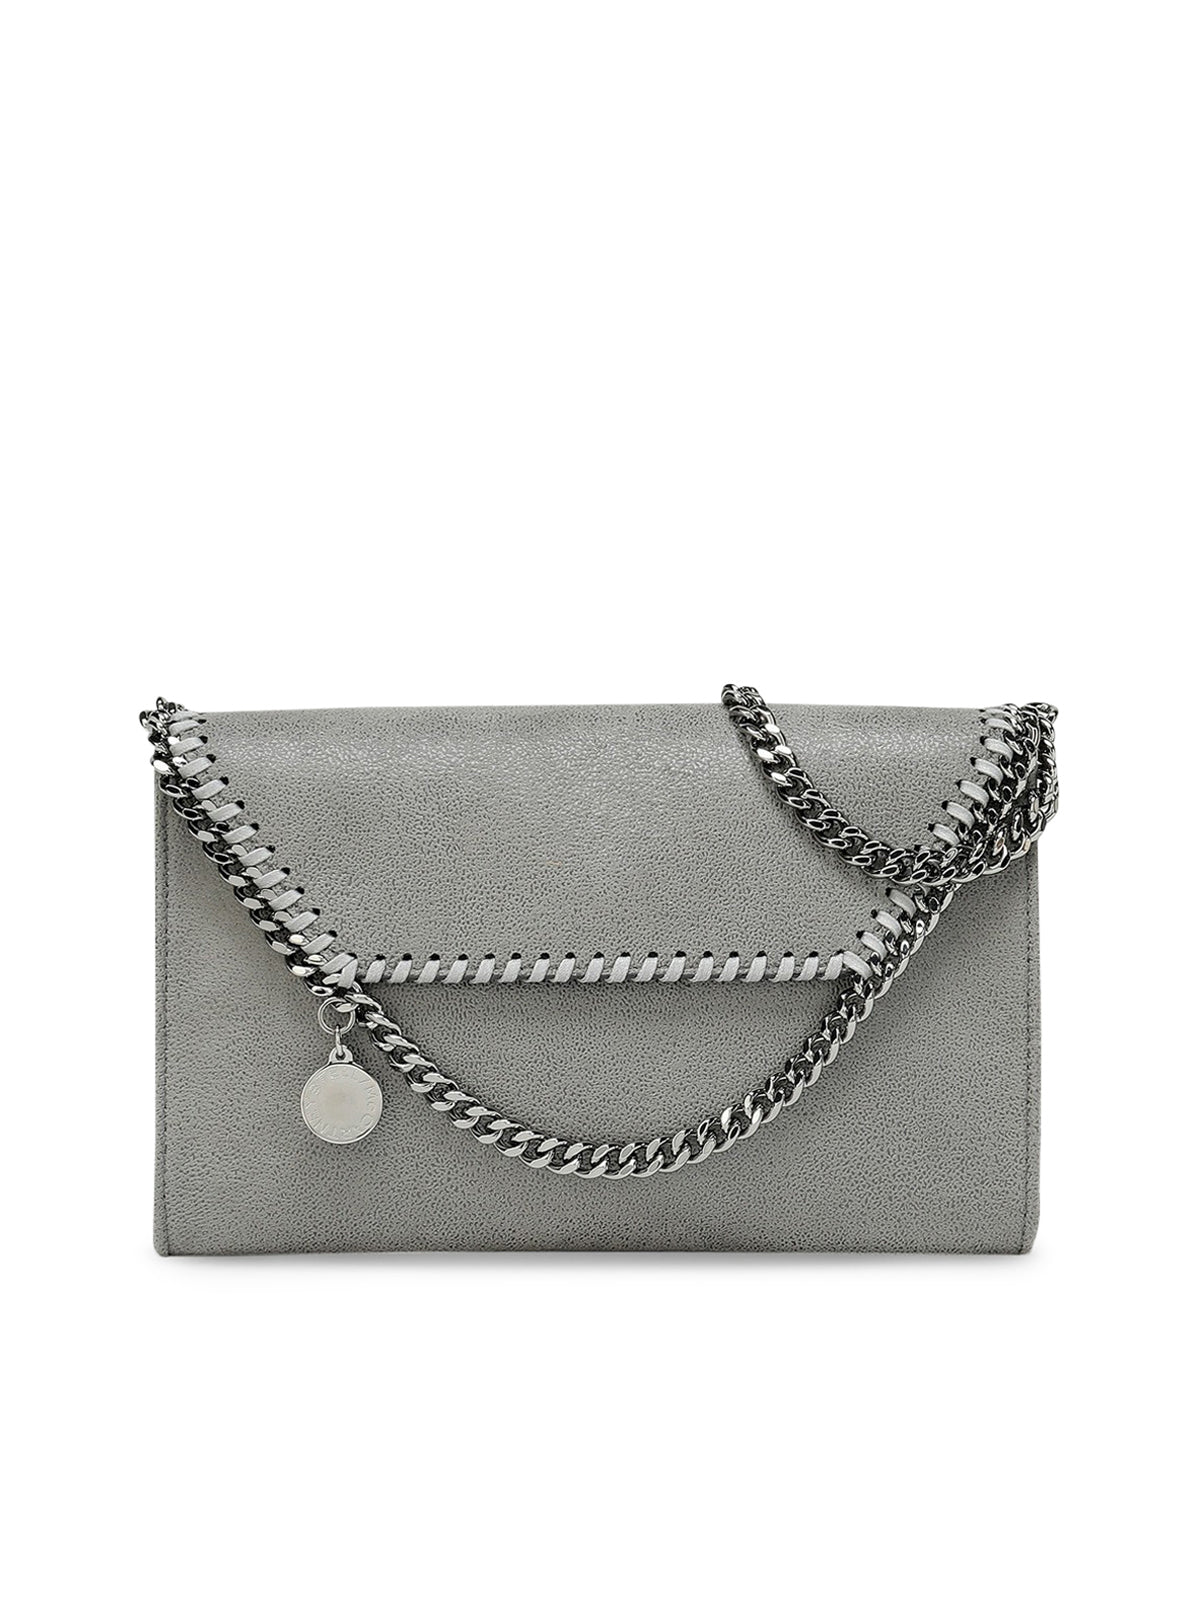 MINI CROSS BODY FALABELLA